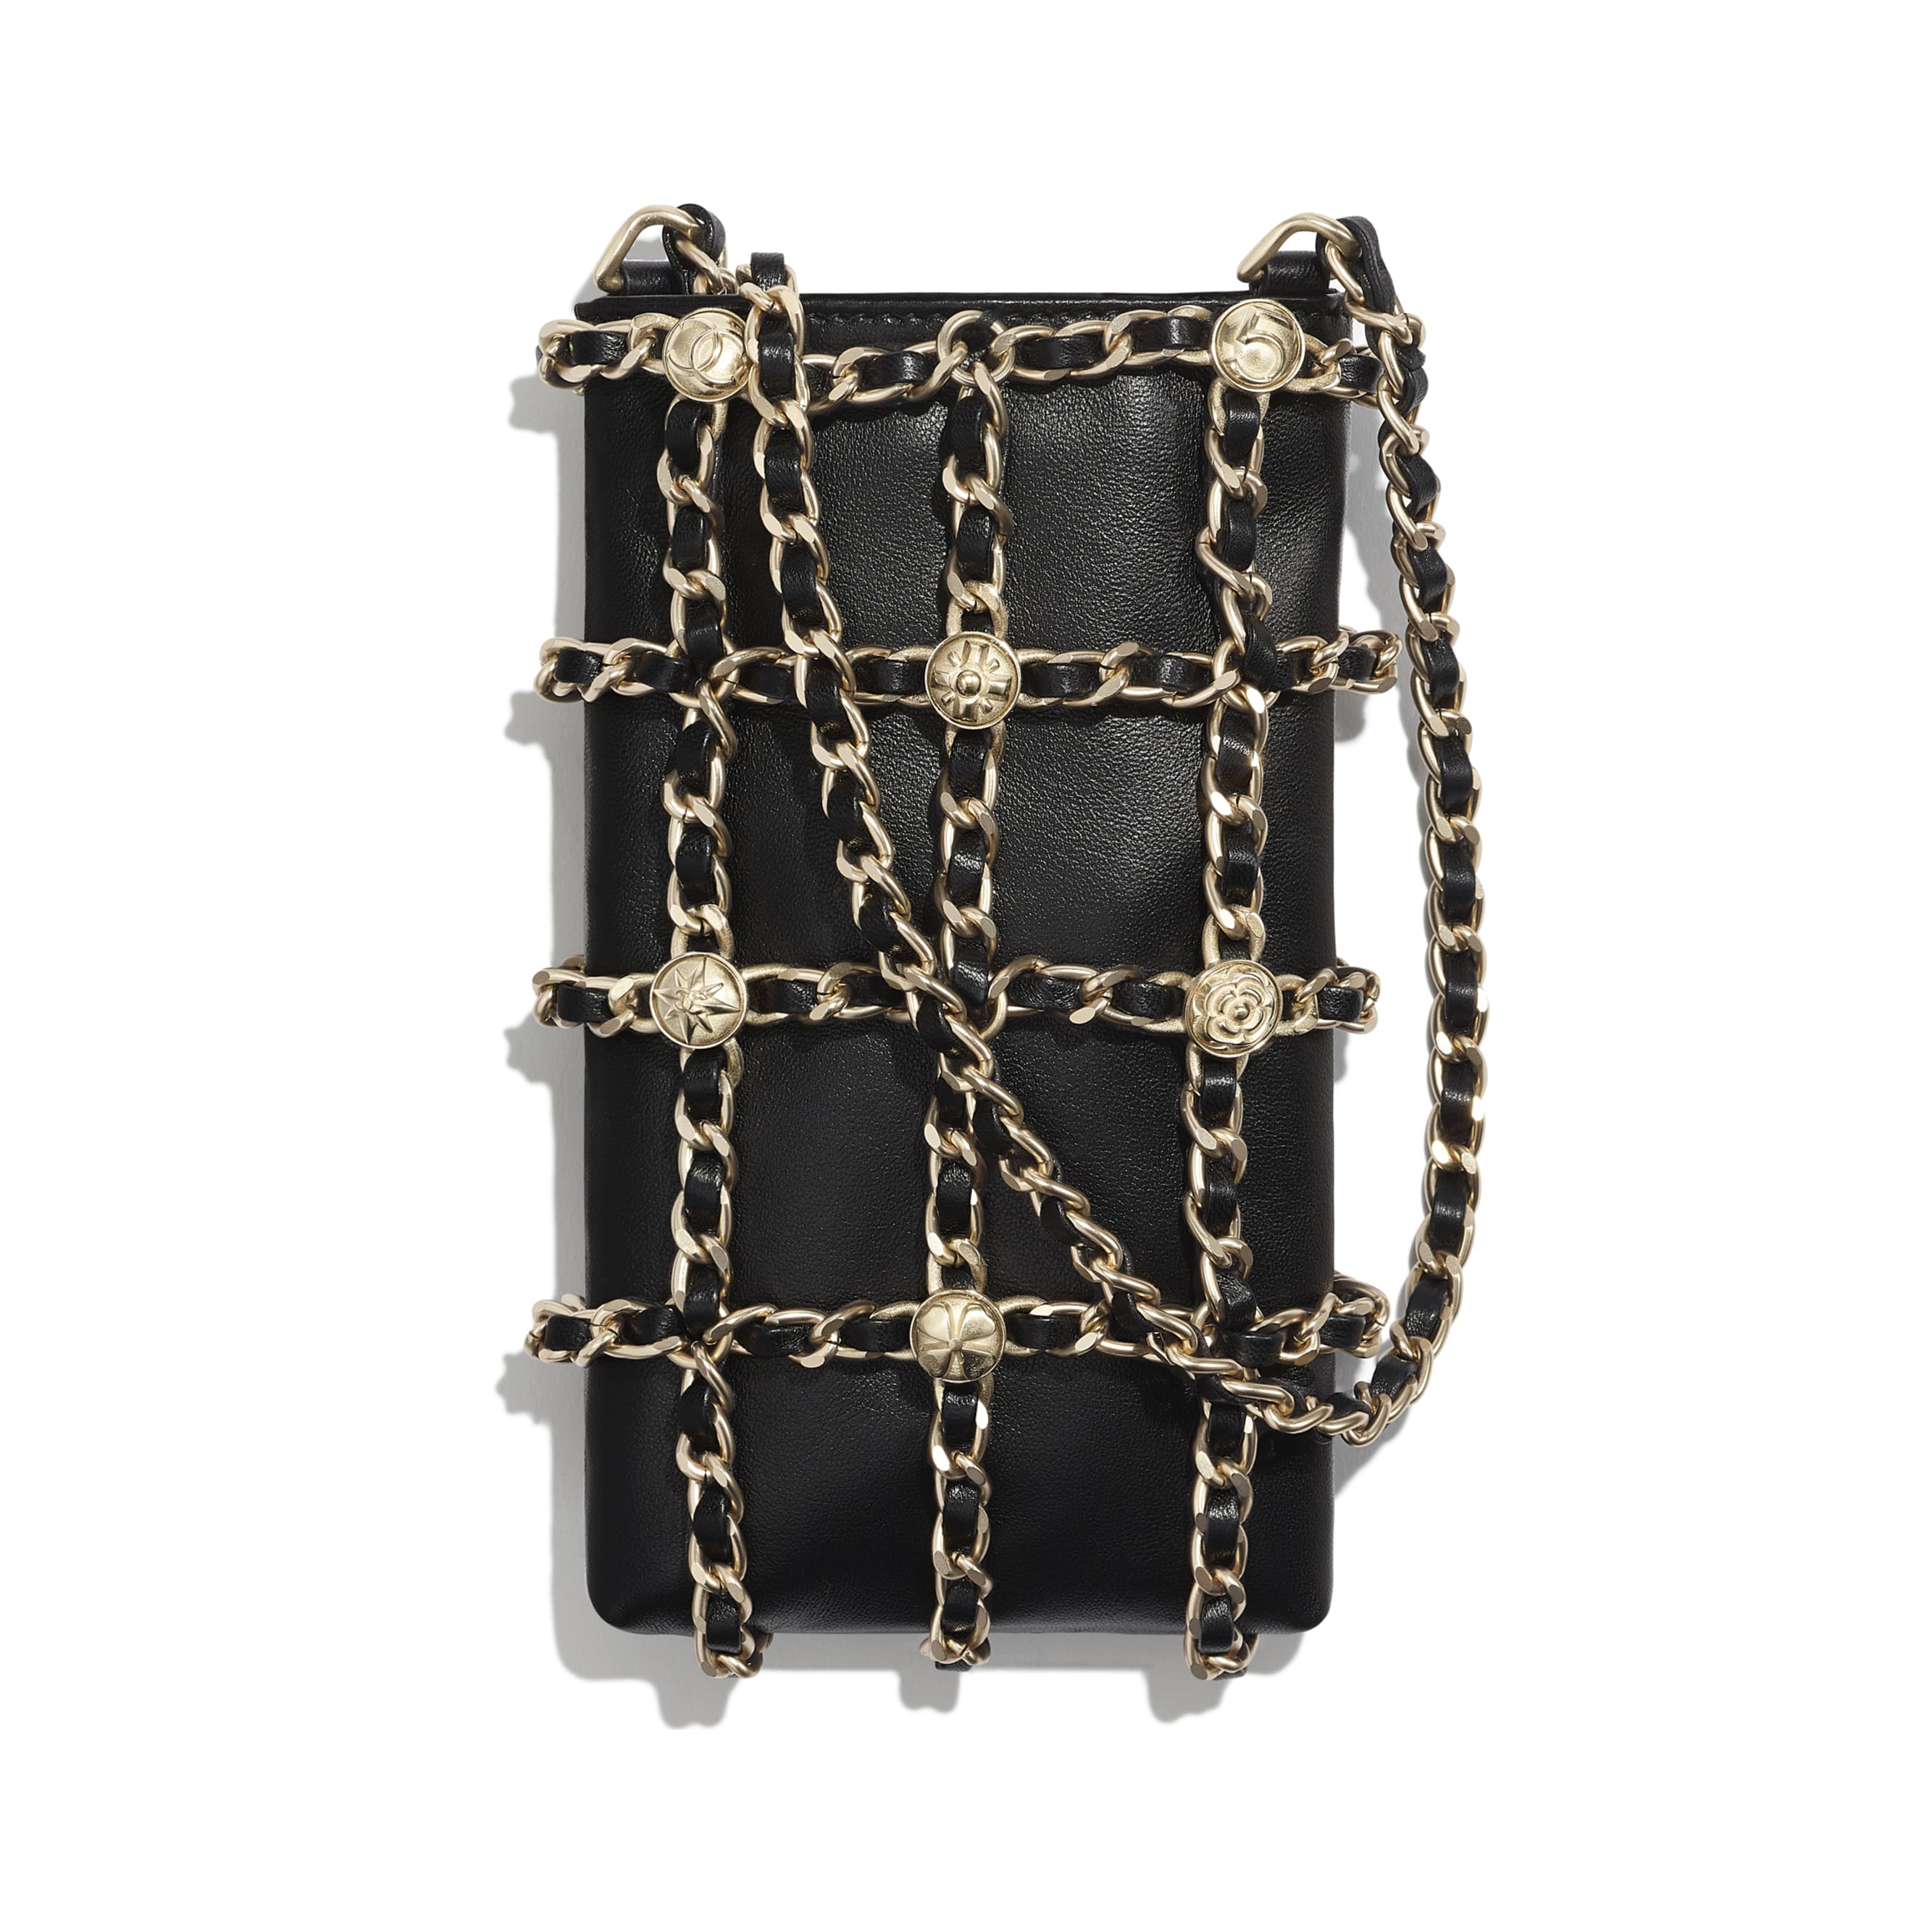 Clutch With Chain - Black - Lambskin, Studs & Gold-Tone Metal - Alternative view - see standard sized version